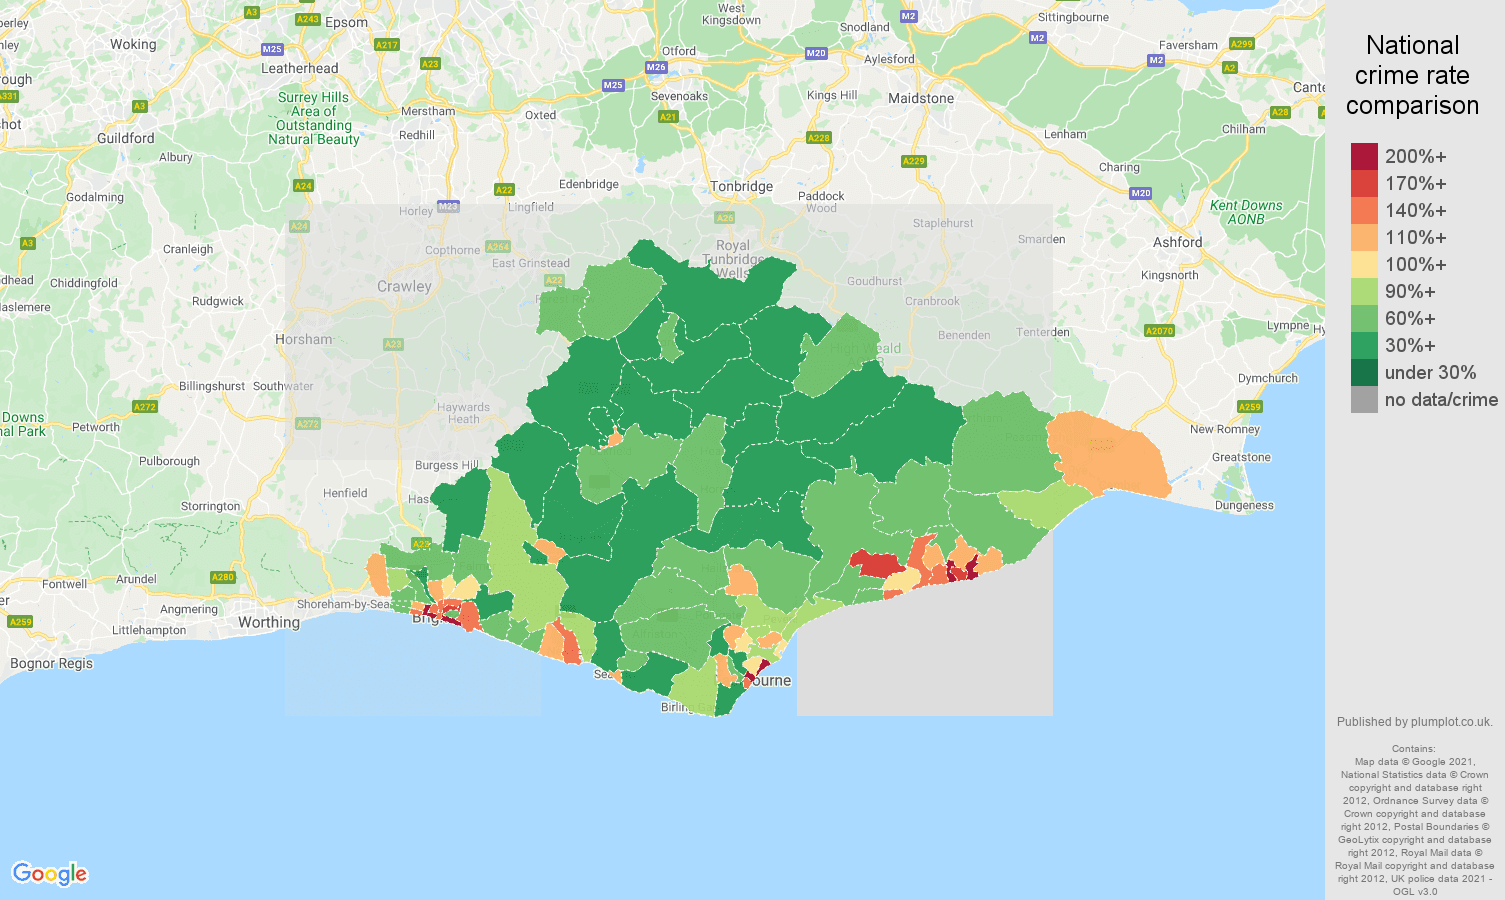 East Sussex antisocial behaviour crime rate comparison map